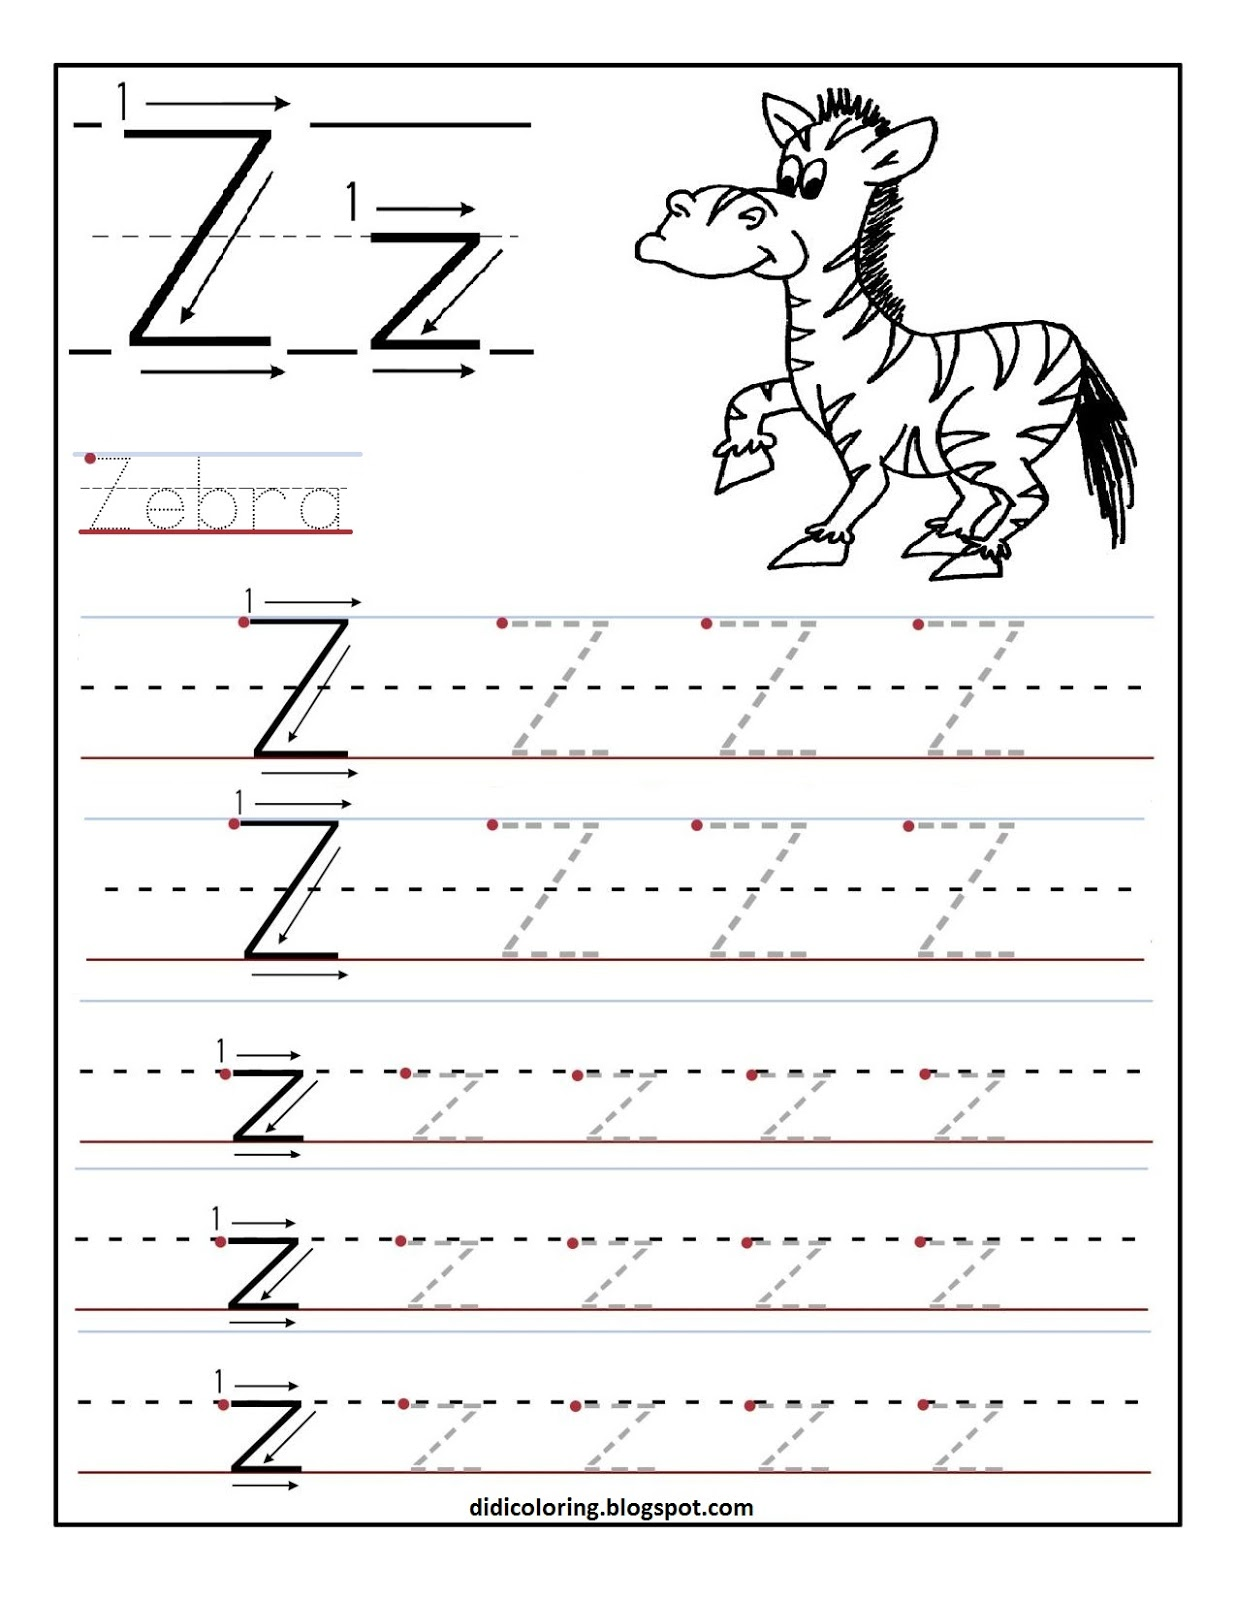 Worksheets A To Z Writing Image collection of z worksheets sharebrowse letter worksheets